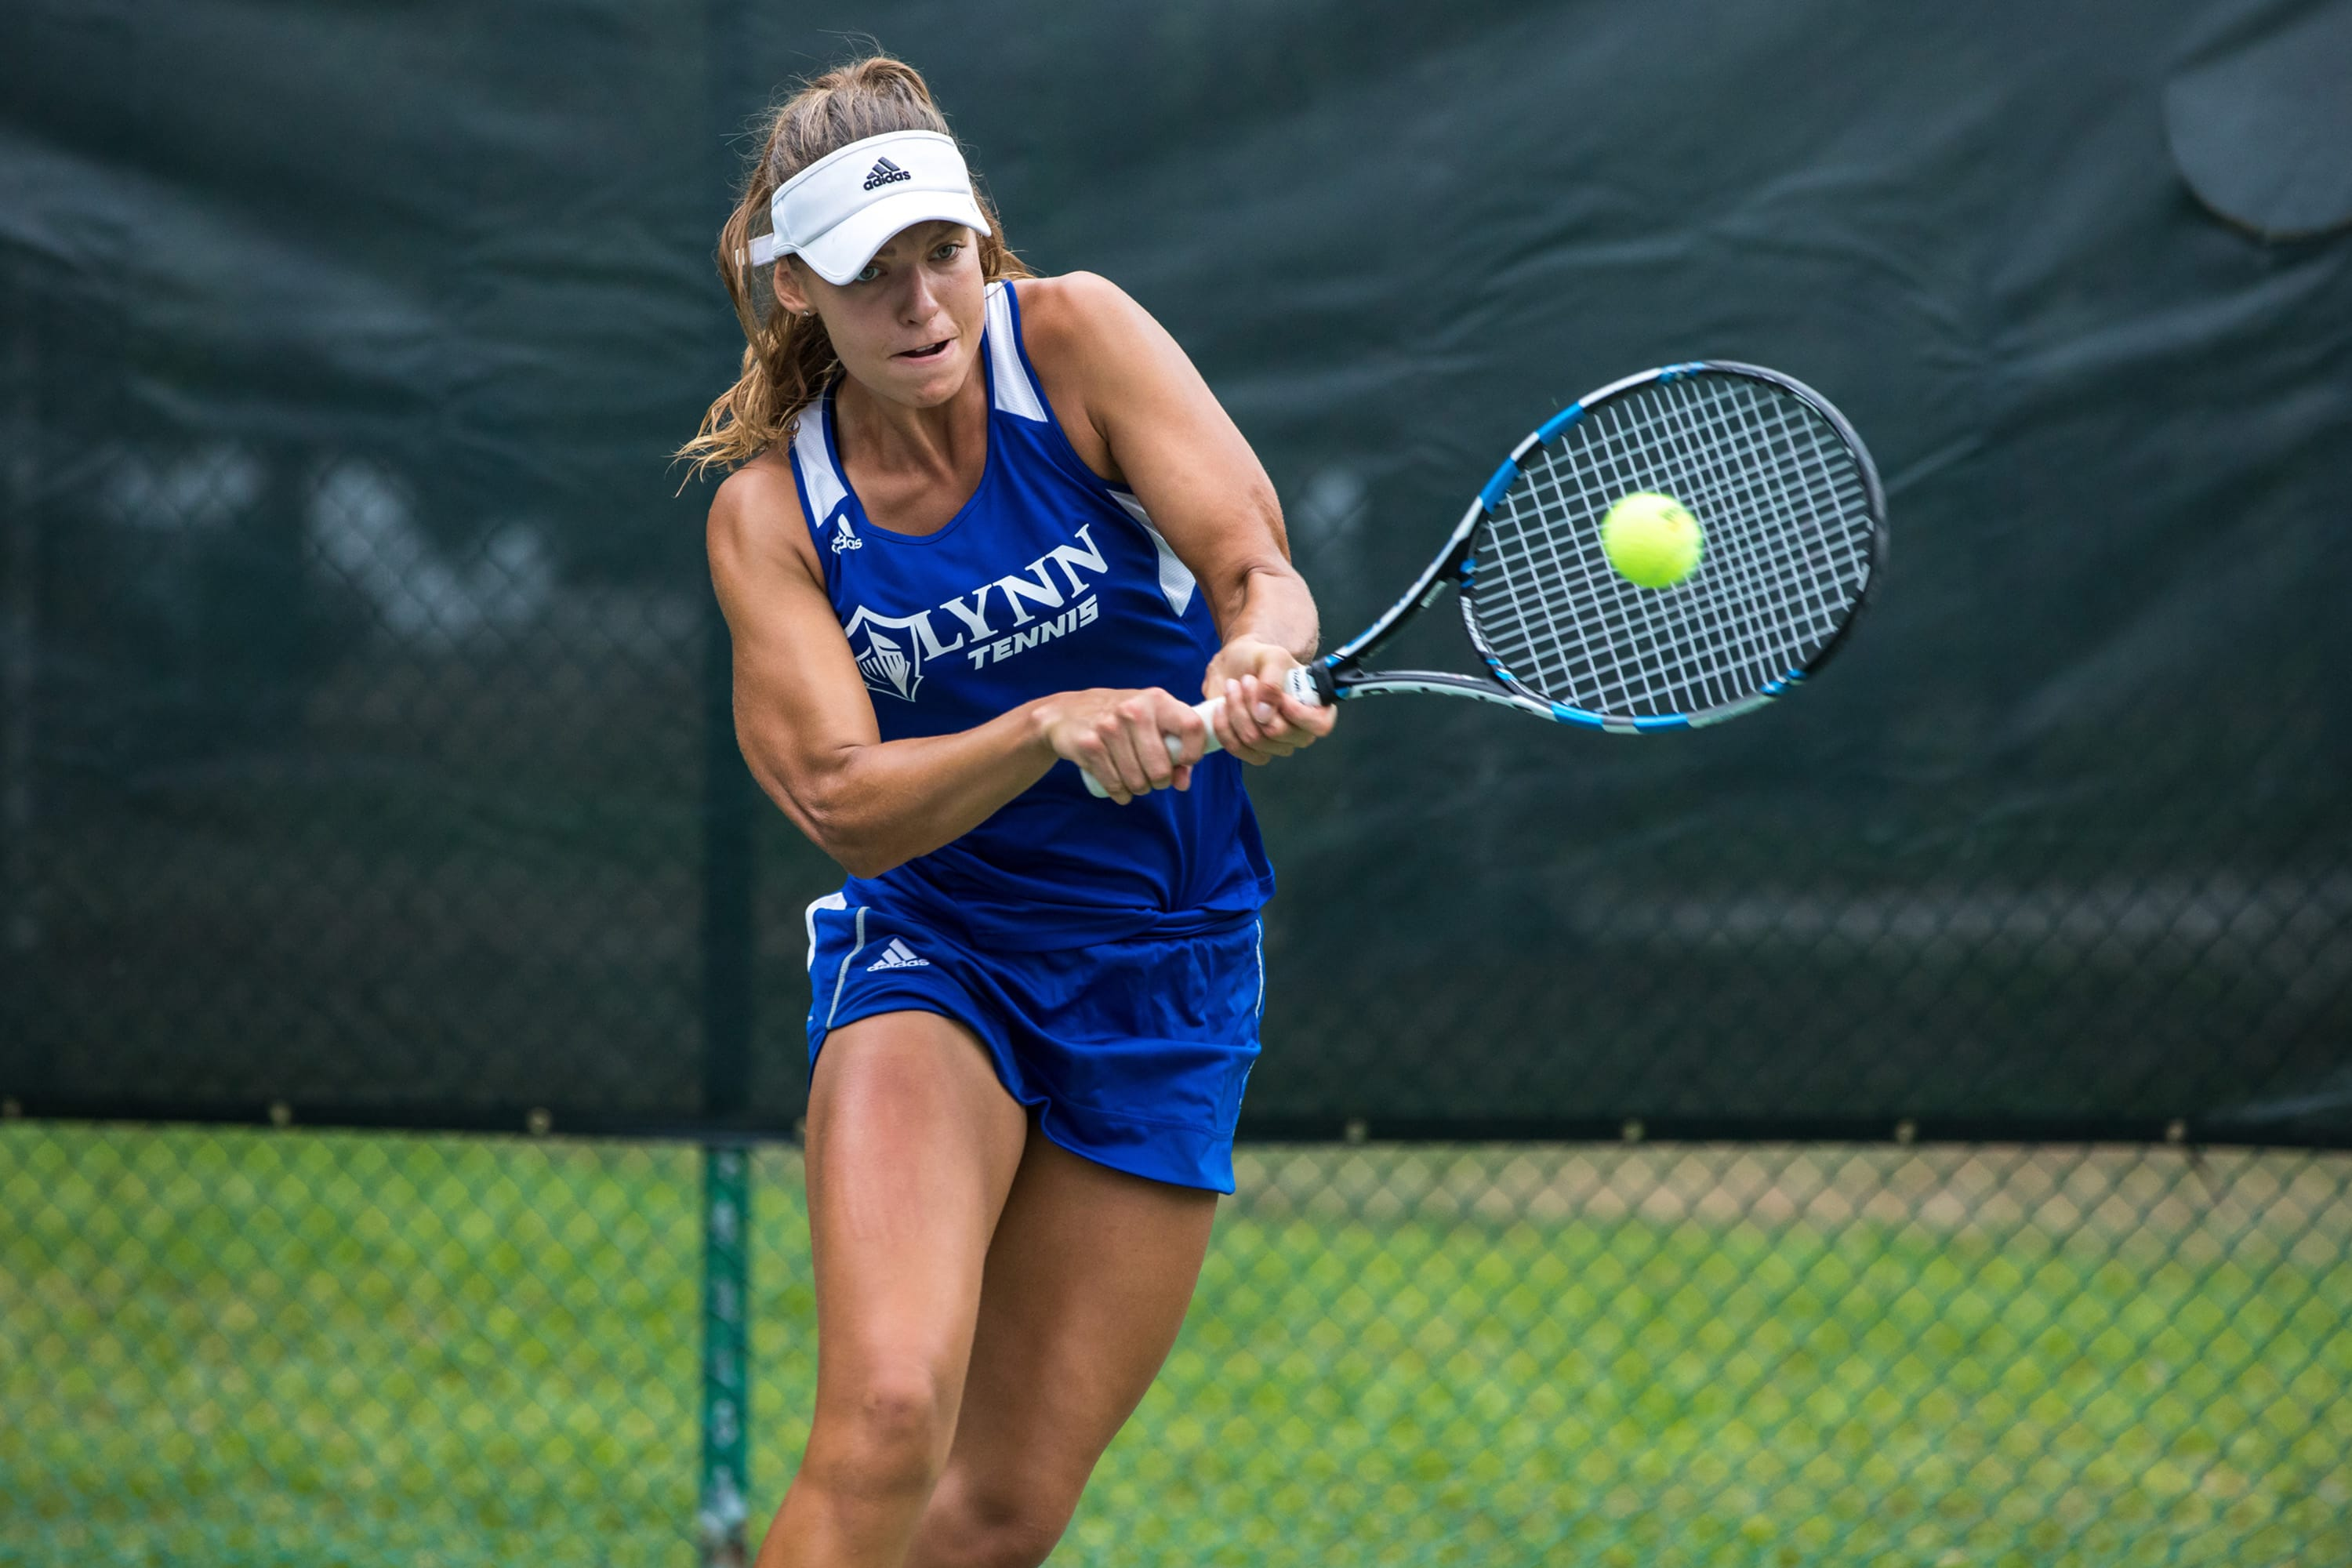 Female tennis player in a US university champion challenge